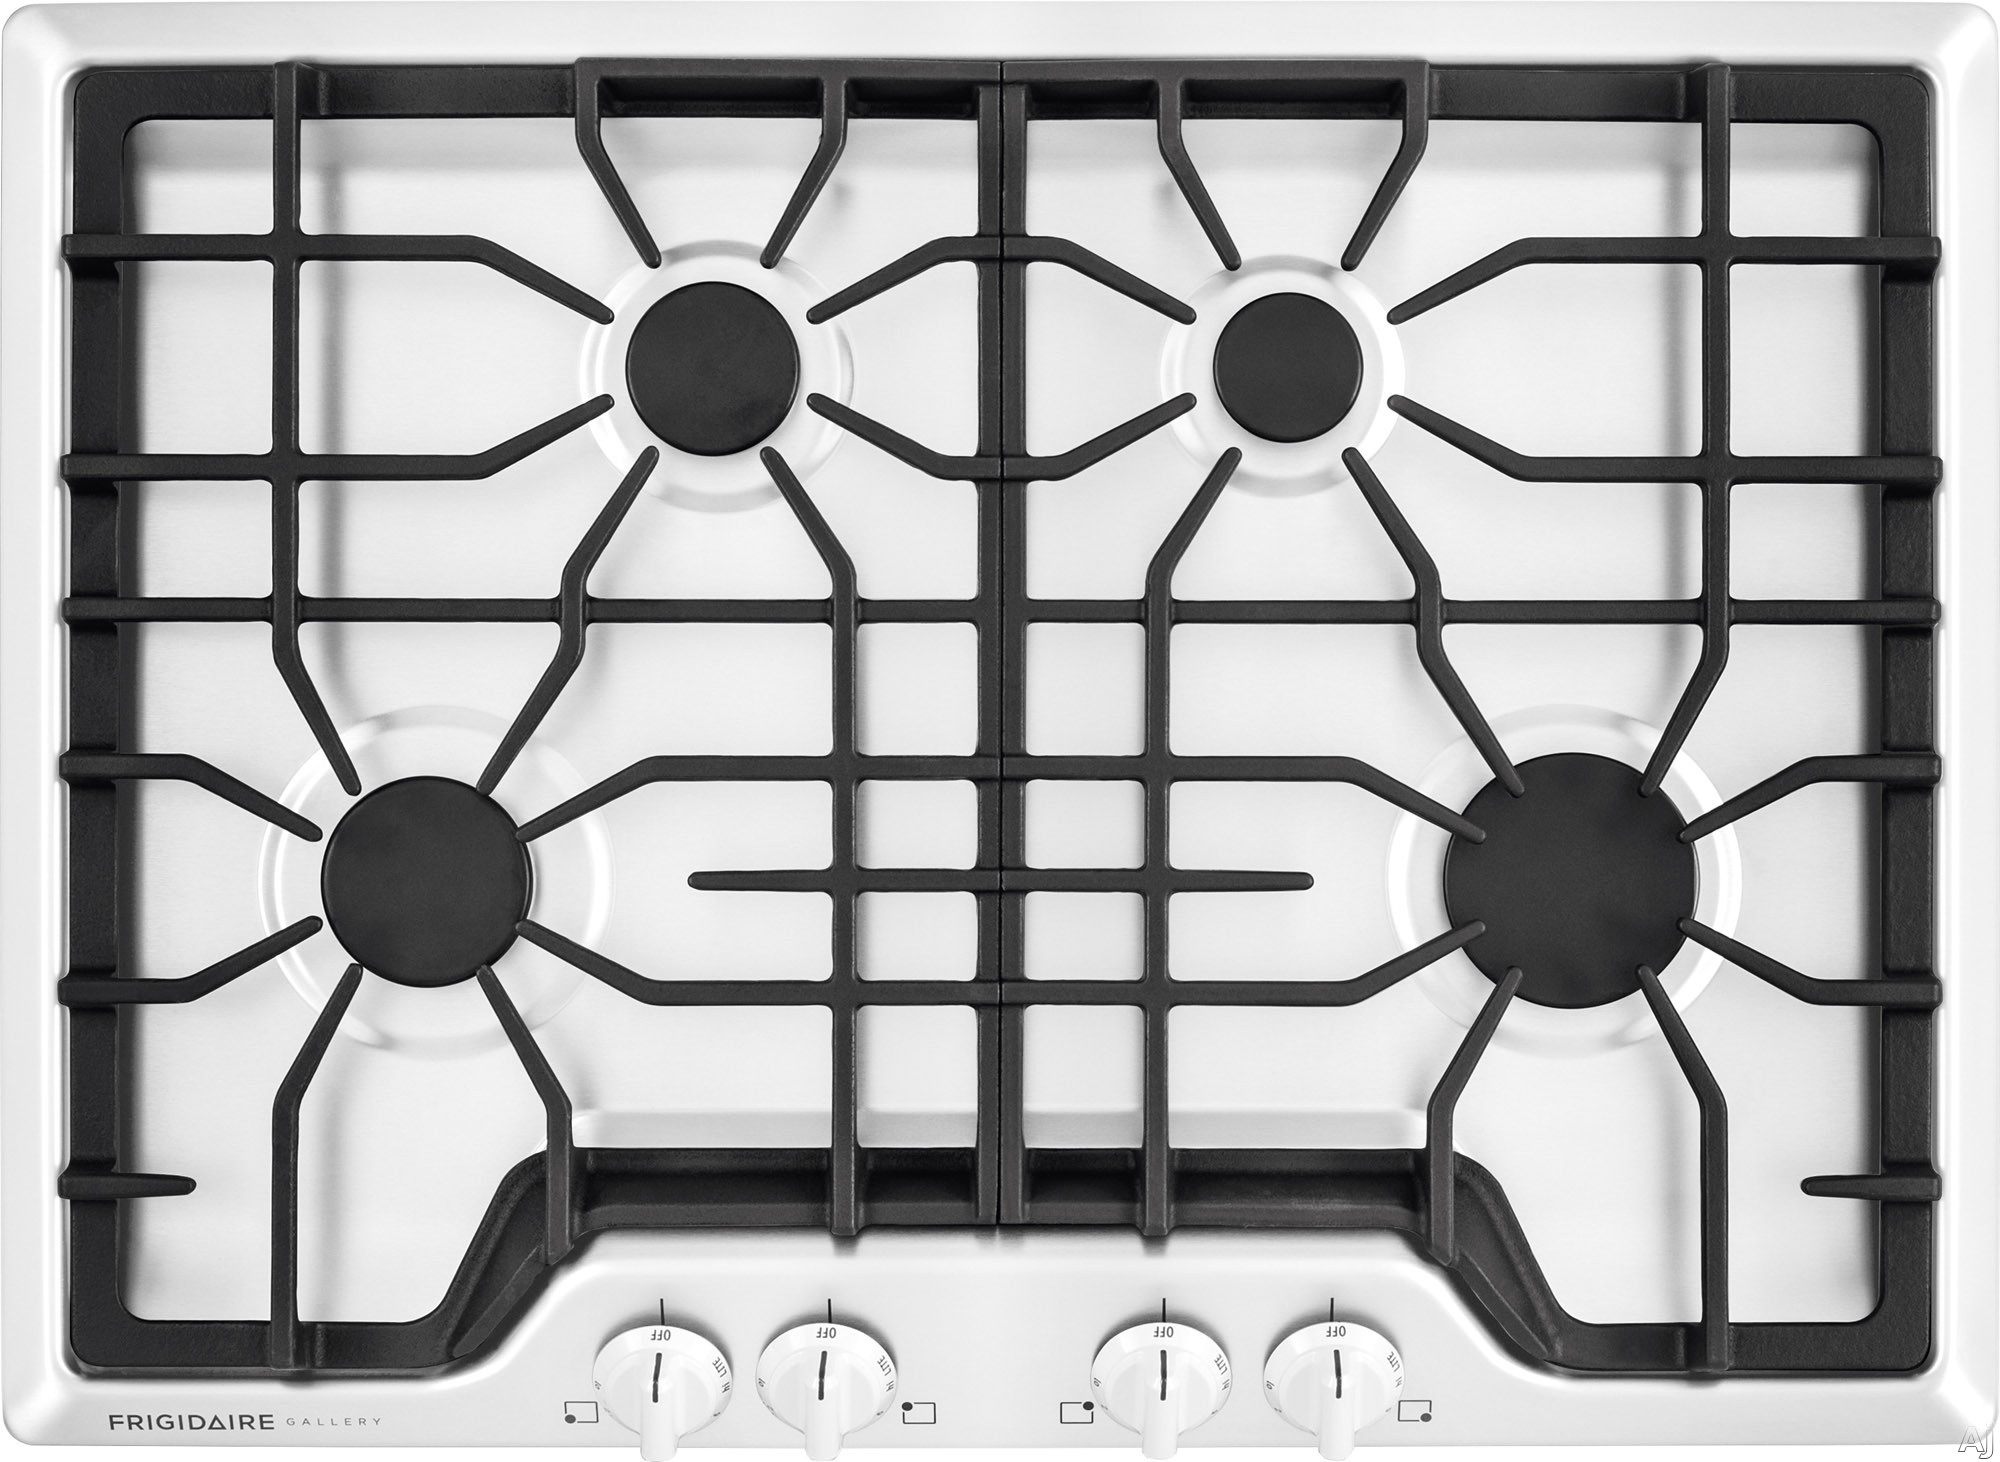 Frigidaire Gallery Series FGGC3045QW 30 Inch Gas Cooktop with 4 Sealed Burners, Low Simmer Burner, Continuous Dishwasher Safe Cast Iron Grates, Front Angled Express-Select Controls, ADA Compliant Design and Spill-Safe Cooktop: White